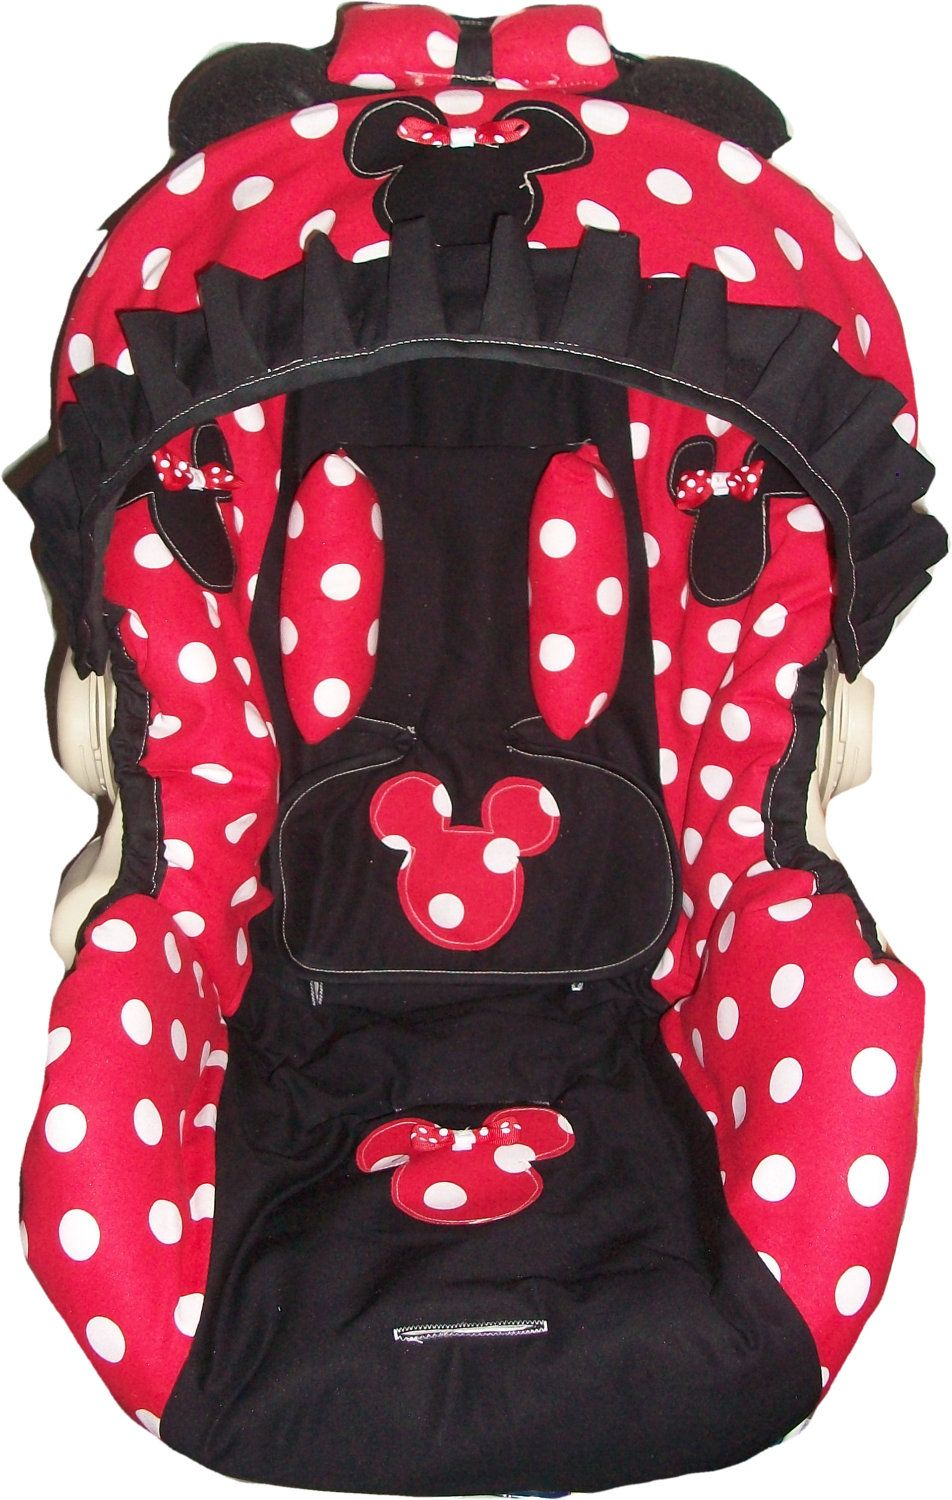 red and white polka dot minnie mouse infant car seat cover any model via etsy omg i. Black Bedroom Furniture Sets. Home Design Ideas